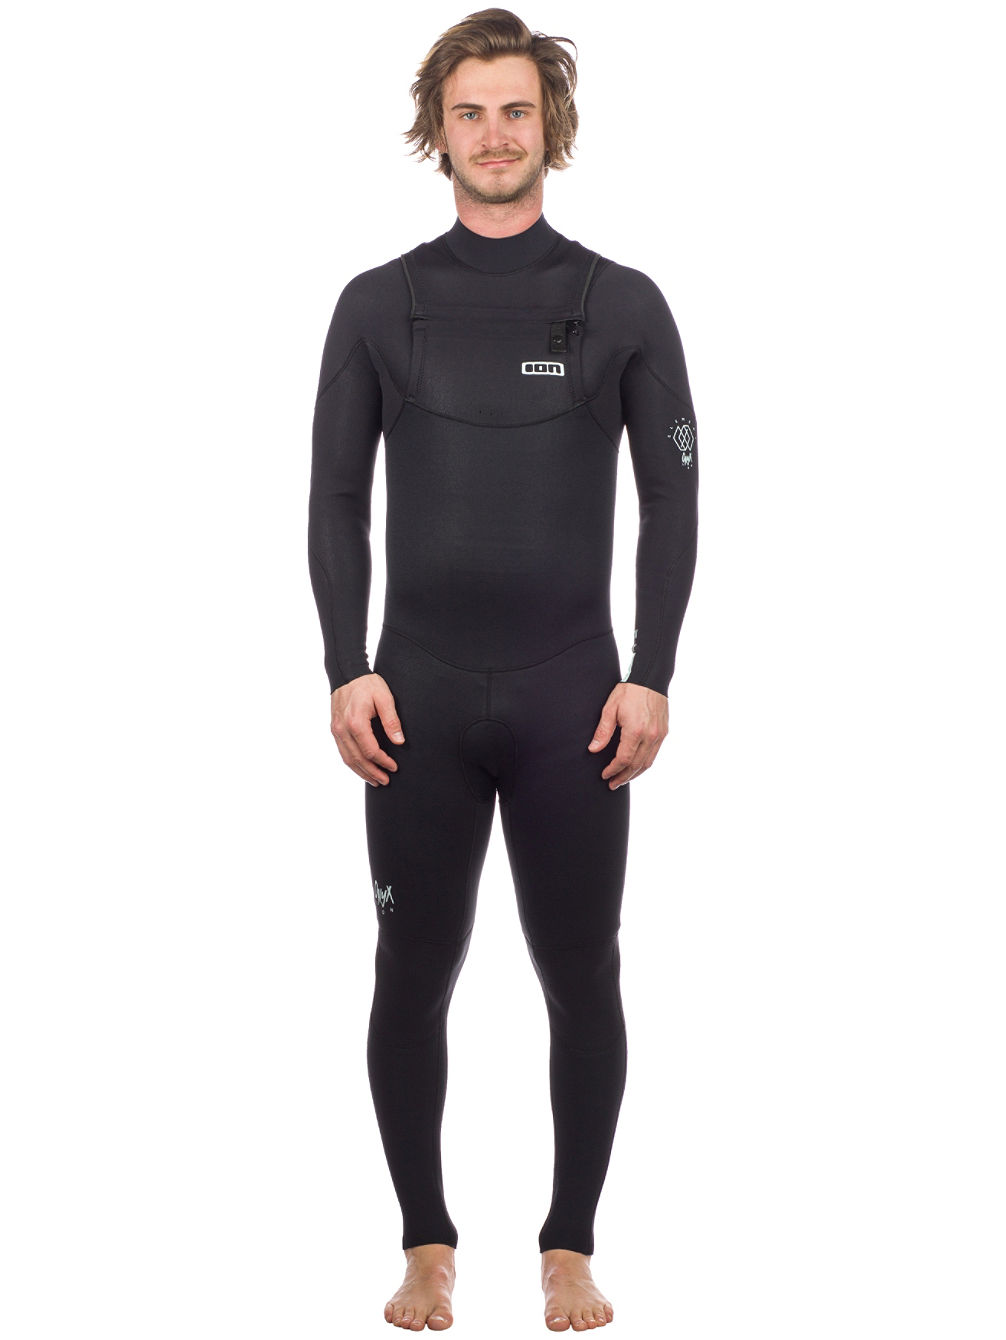 Onyx Element Semidry 4/3 Front Zip